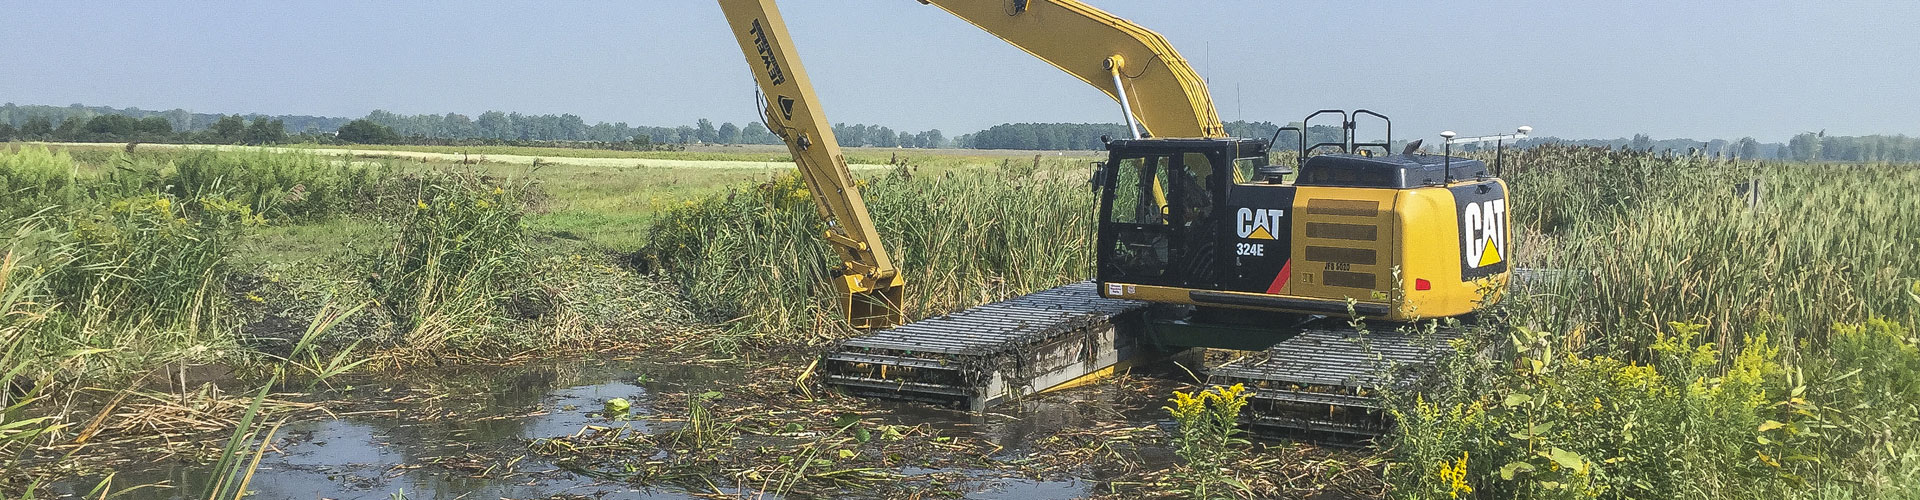 Wetland remediation, wetland dredging, impacted sediment removal, wetland restoration, marsh restoration